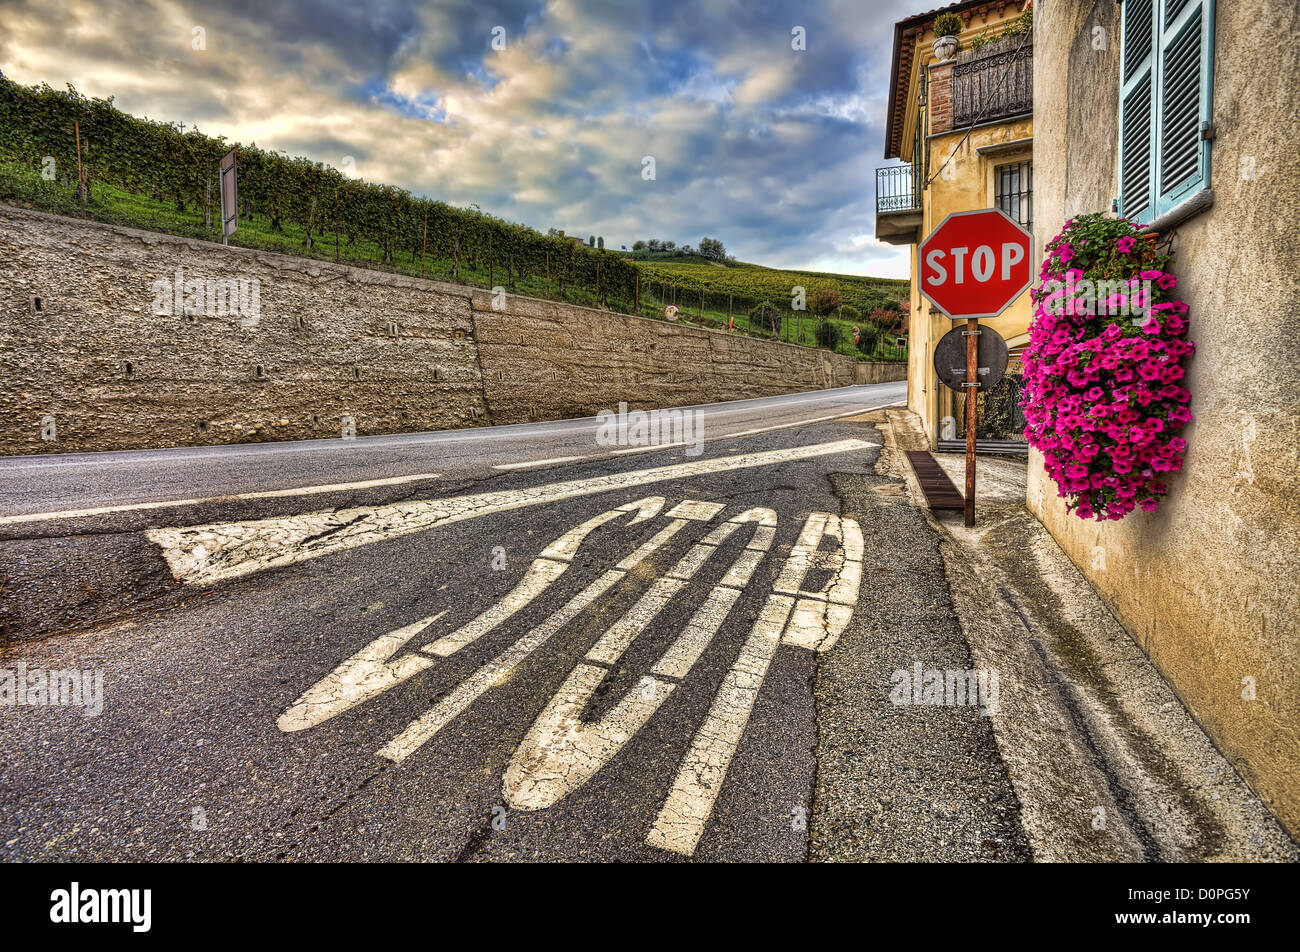 Stop sign on the narrow road among old house and vineyards under cloudy sky in Piedmont, Northern Italy. - Stock Image